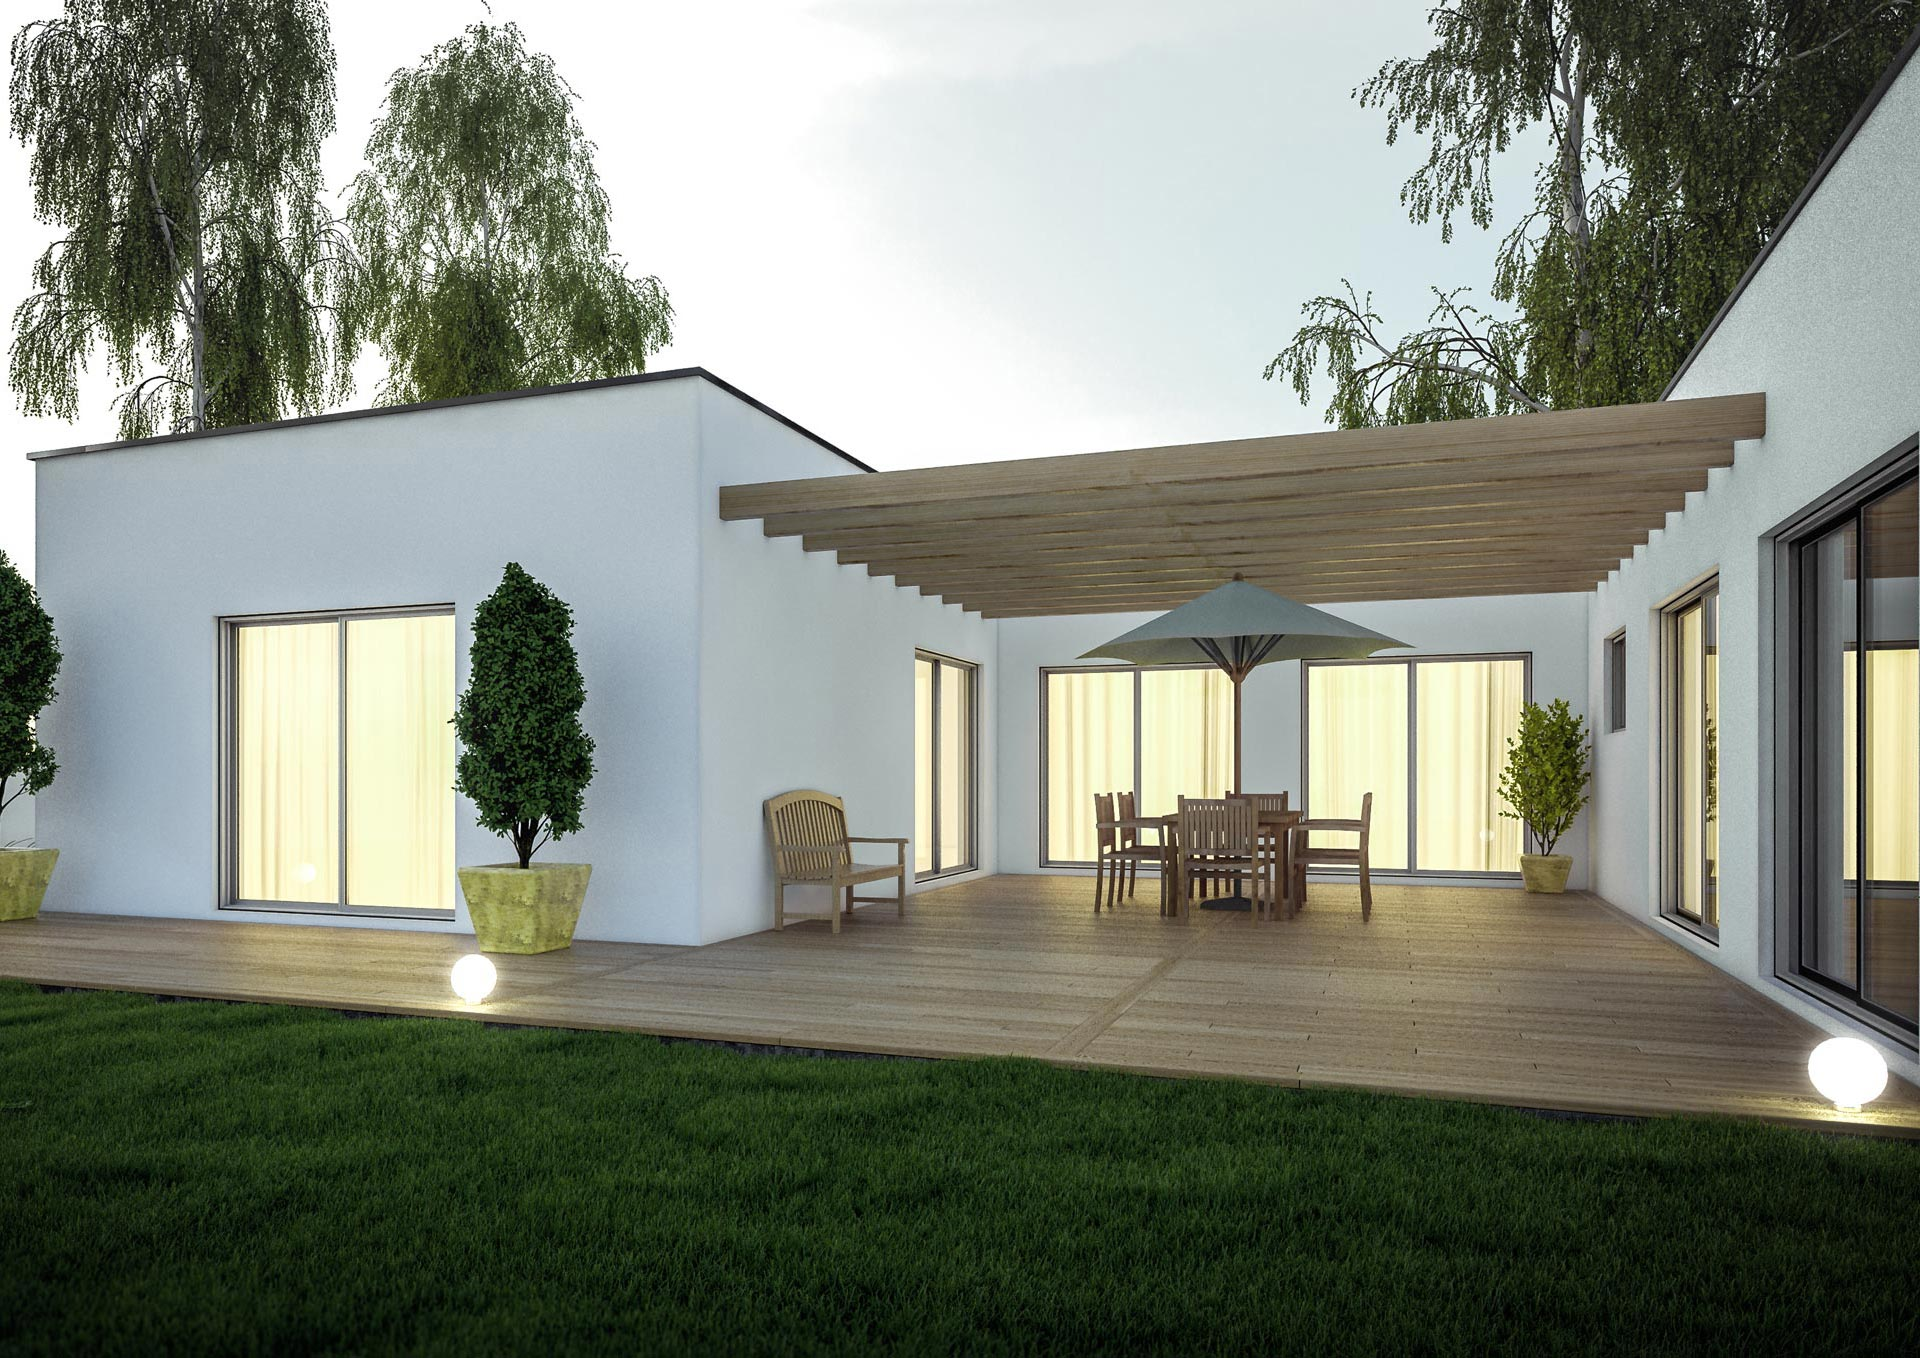 extension-maison-design-pergola-patio-zen.jpg